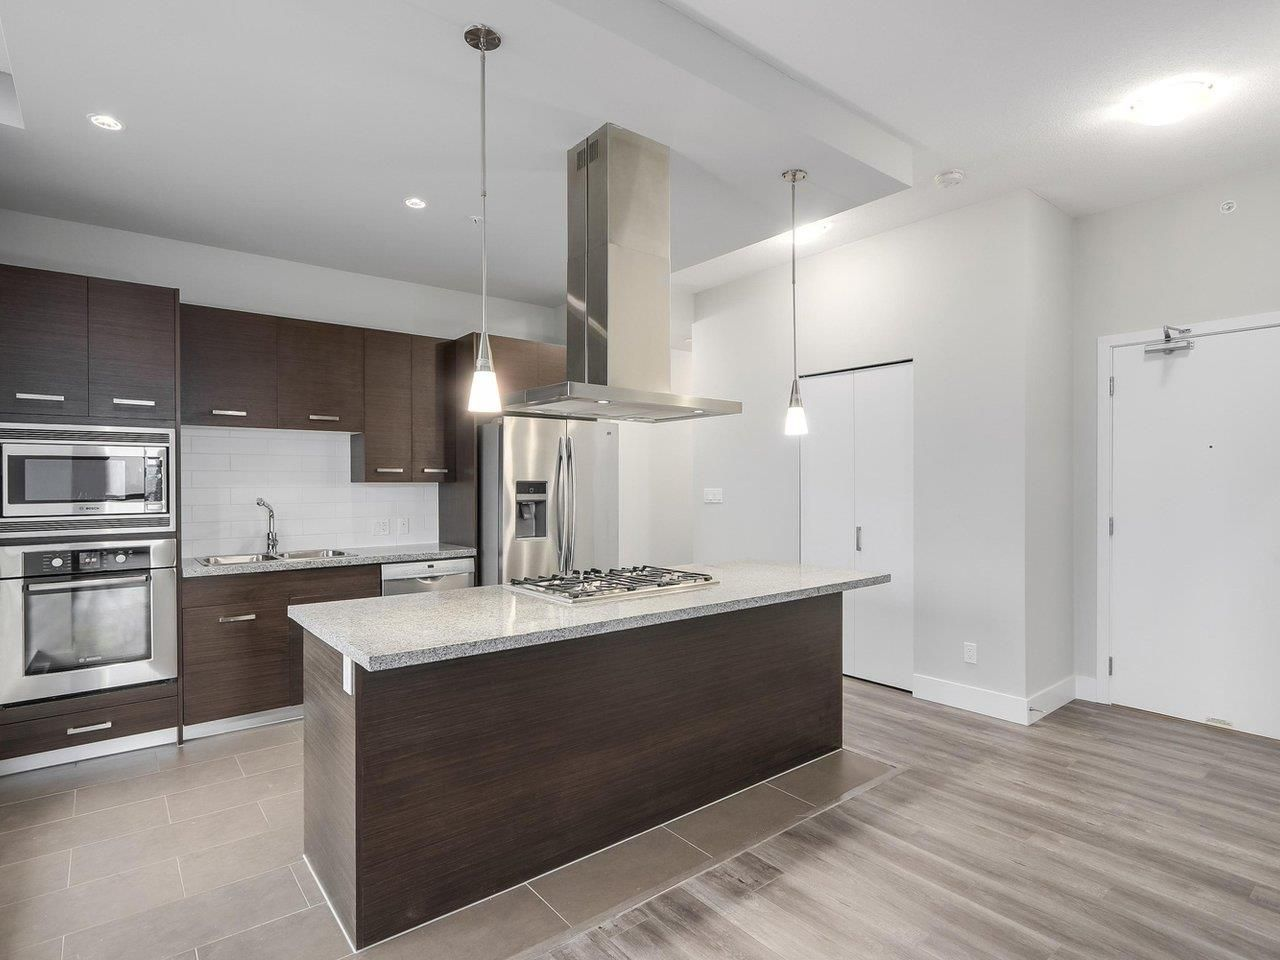 """Main Photo: 2002 2959 GLEN Drive in Coquitlam: North Coquitlam Condo for sale in """"THE PARC"""" : MLS®# R2213475"""